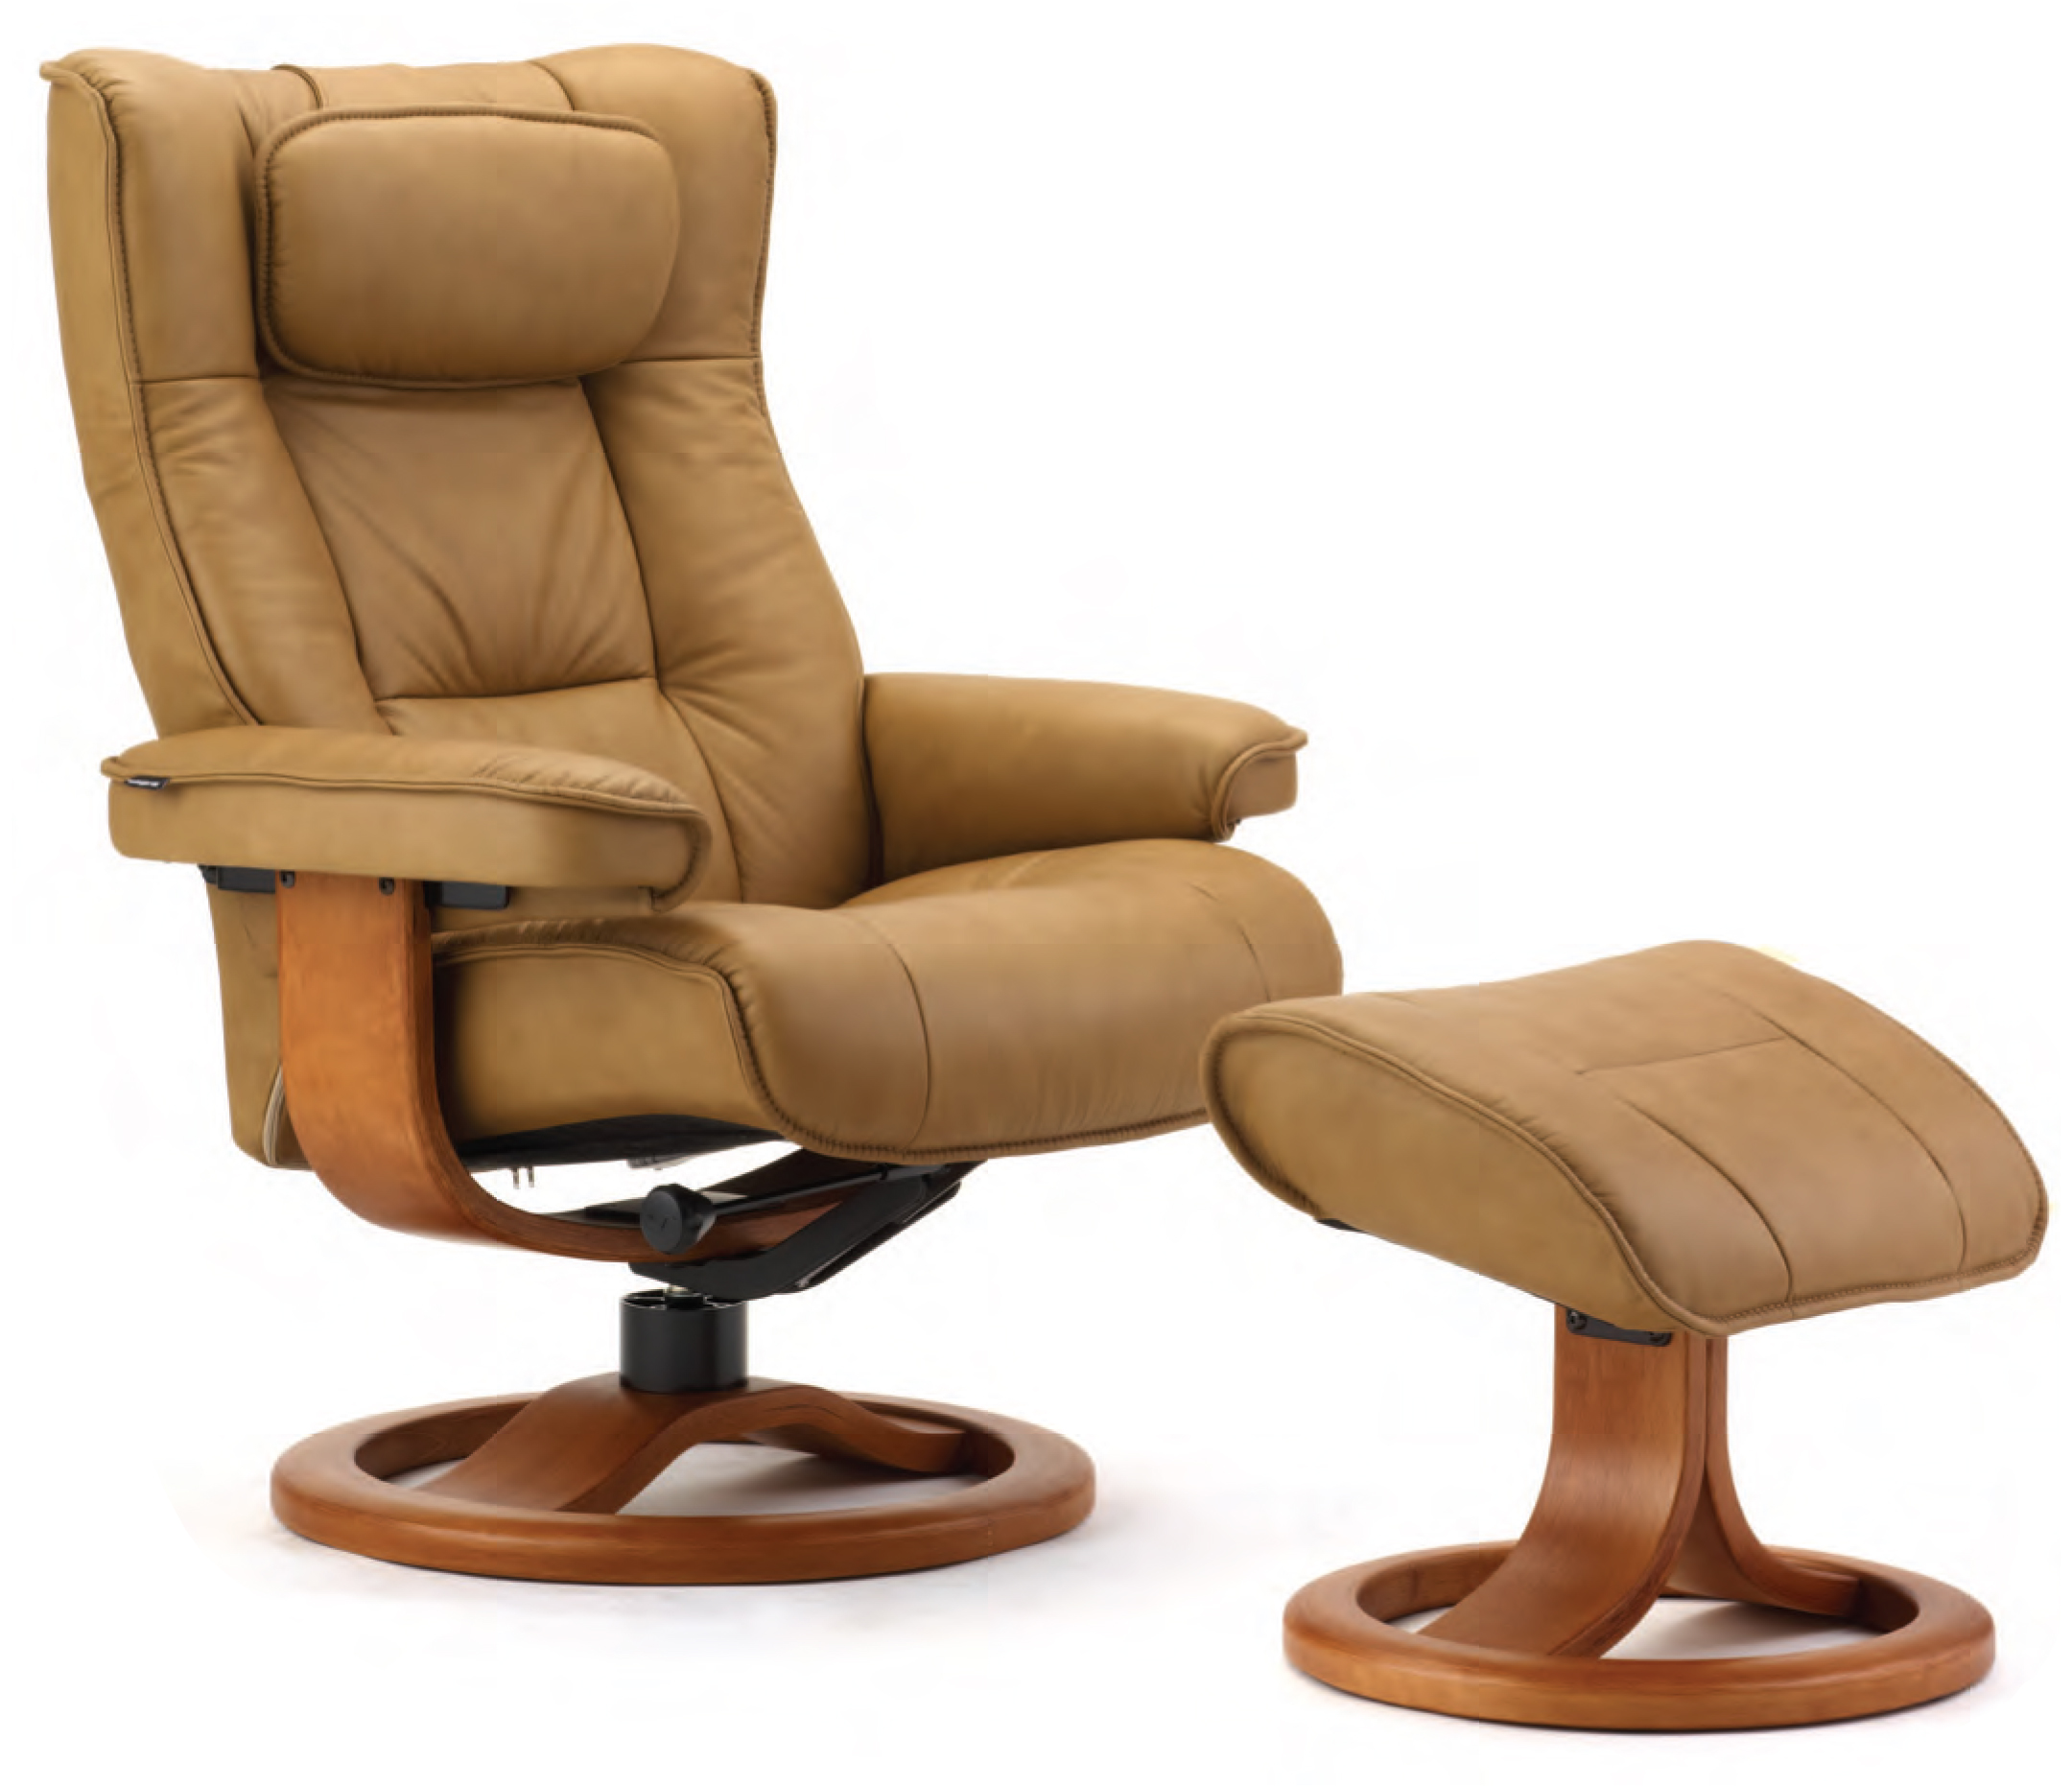 Fjords Regent Hassel Leather Recliner Chair and Ottoman  sc 1 st  Vitalityweb.com & Fjords Regent Ergonomic Leather Recliner Chair + Ottoman ... islam-shia.org